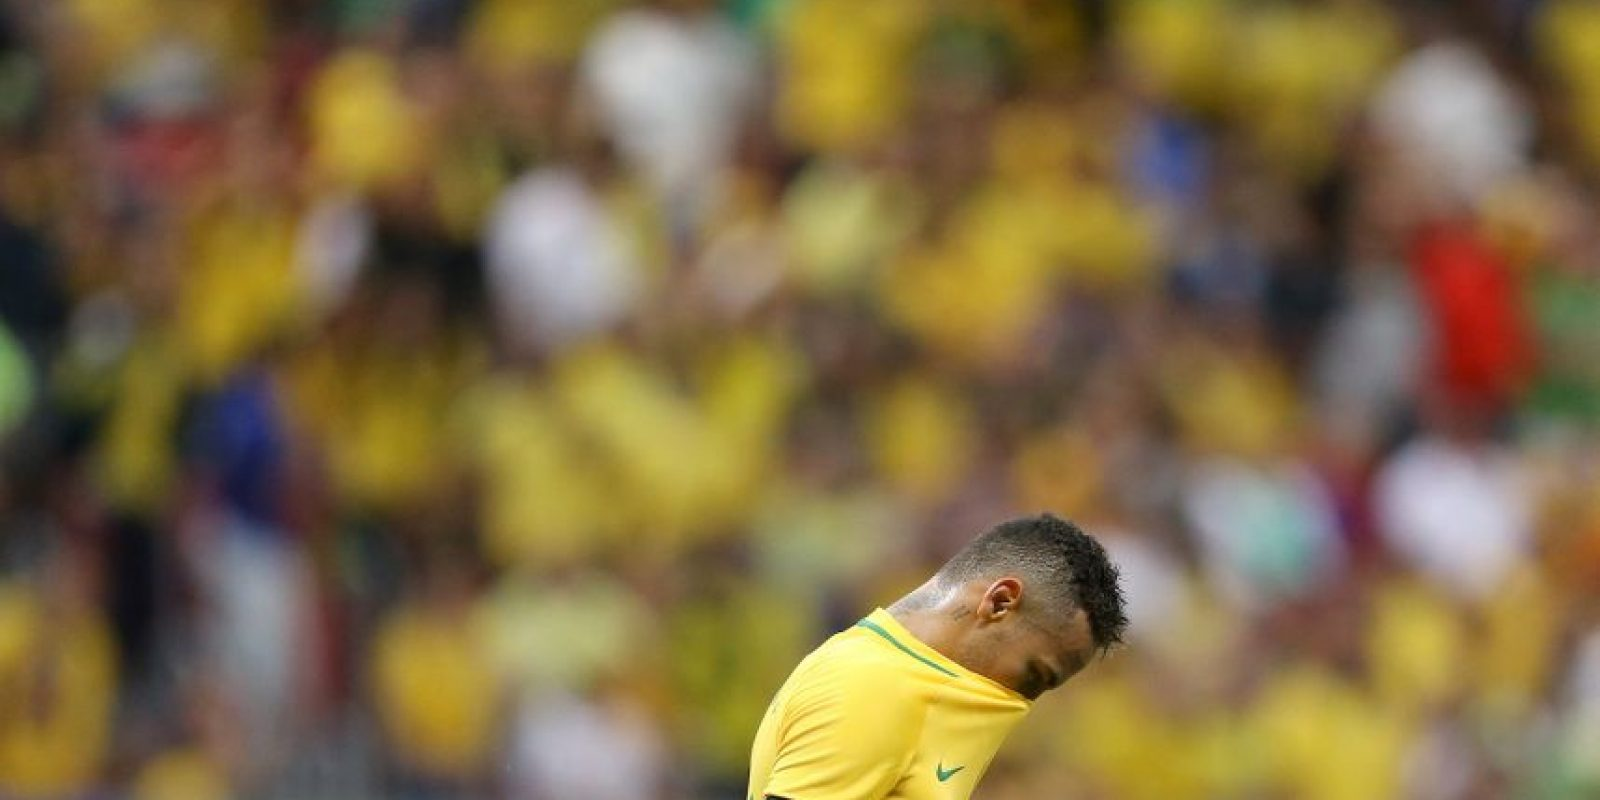 Brasil sigue decepcionando en fútbol Foto: Getty Images